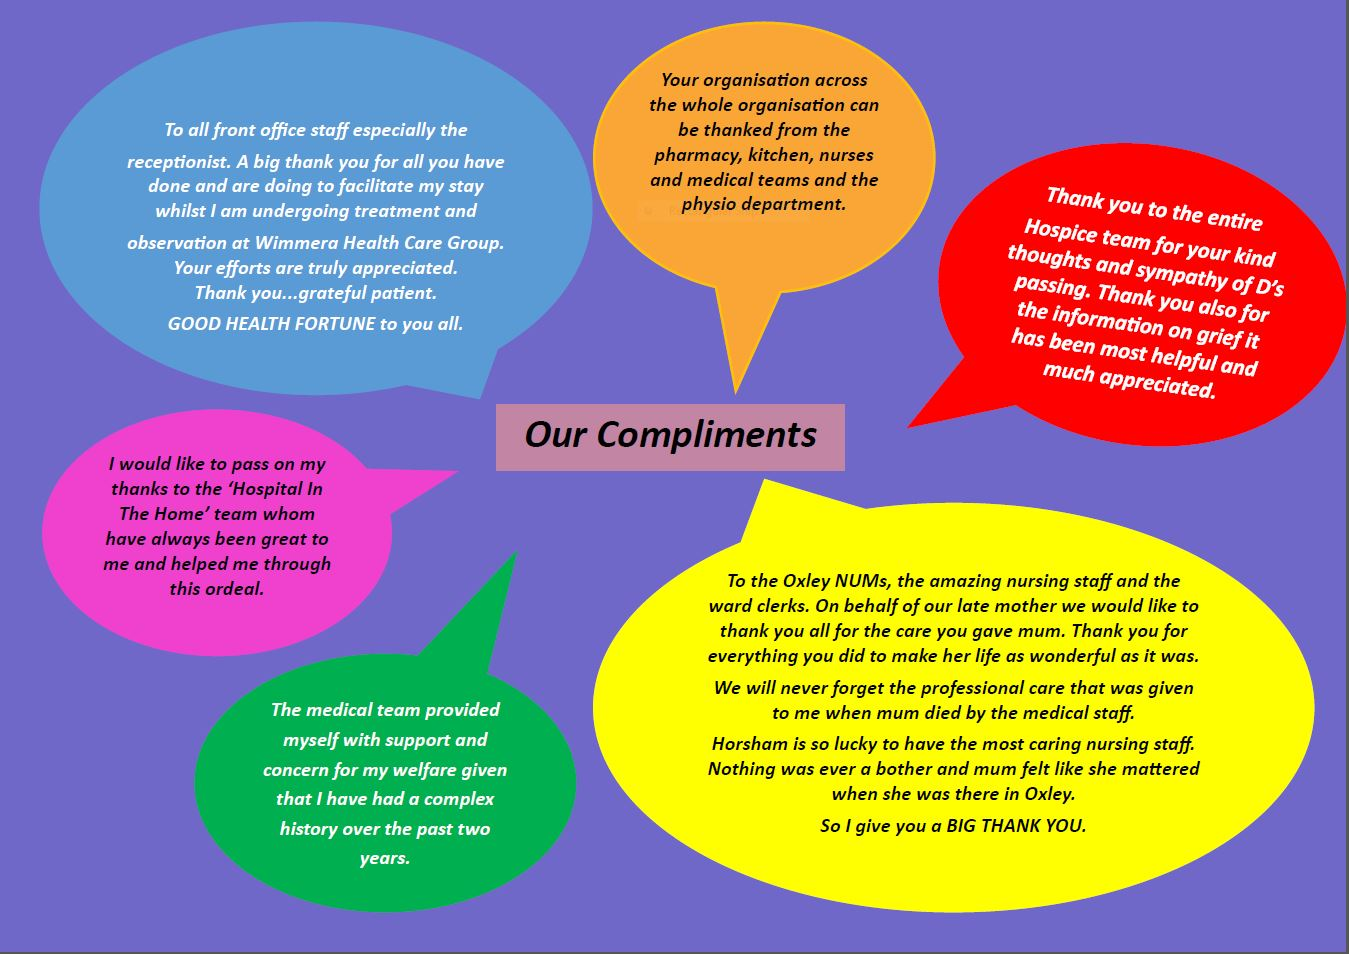 Our Compliments